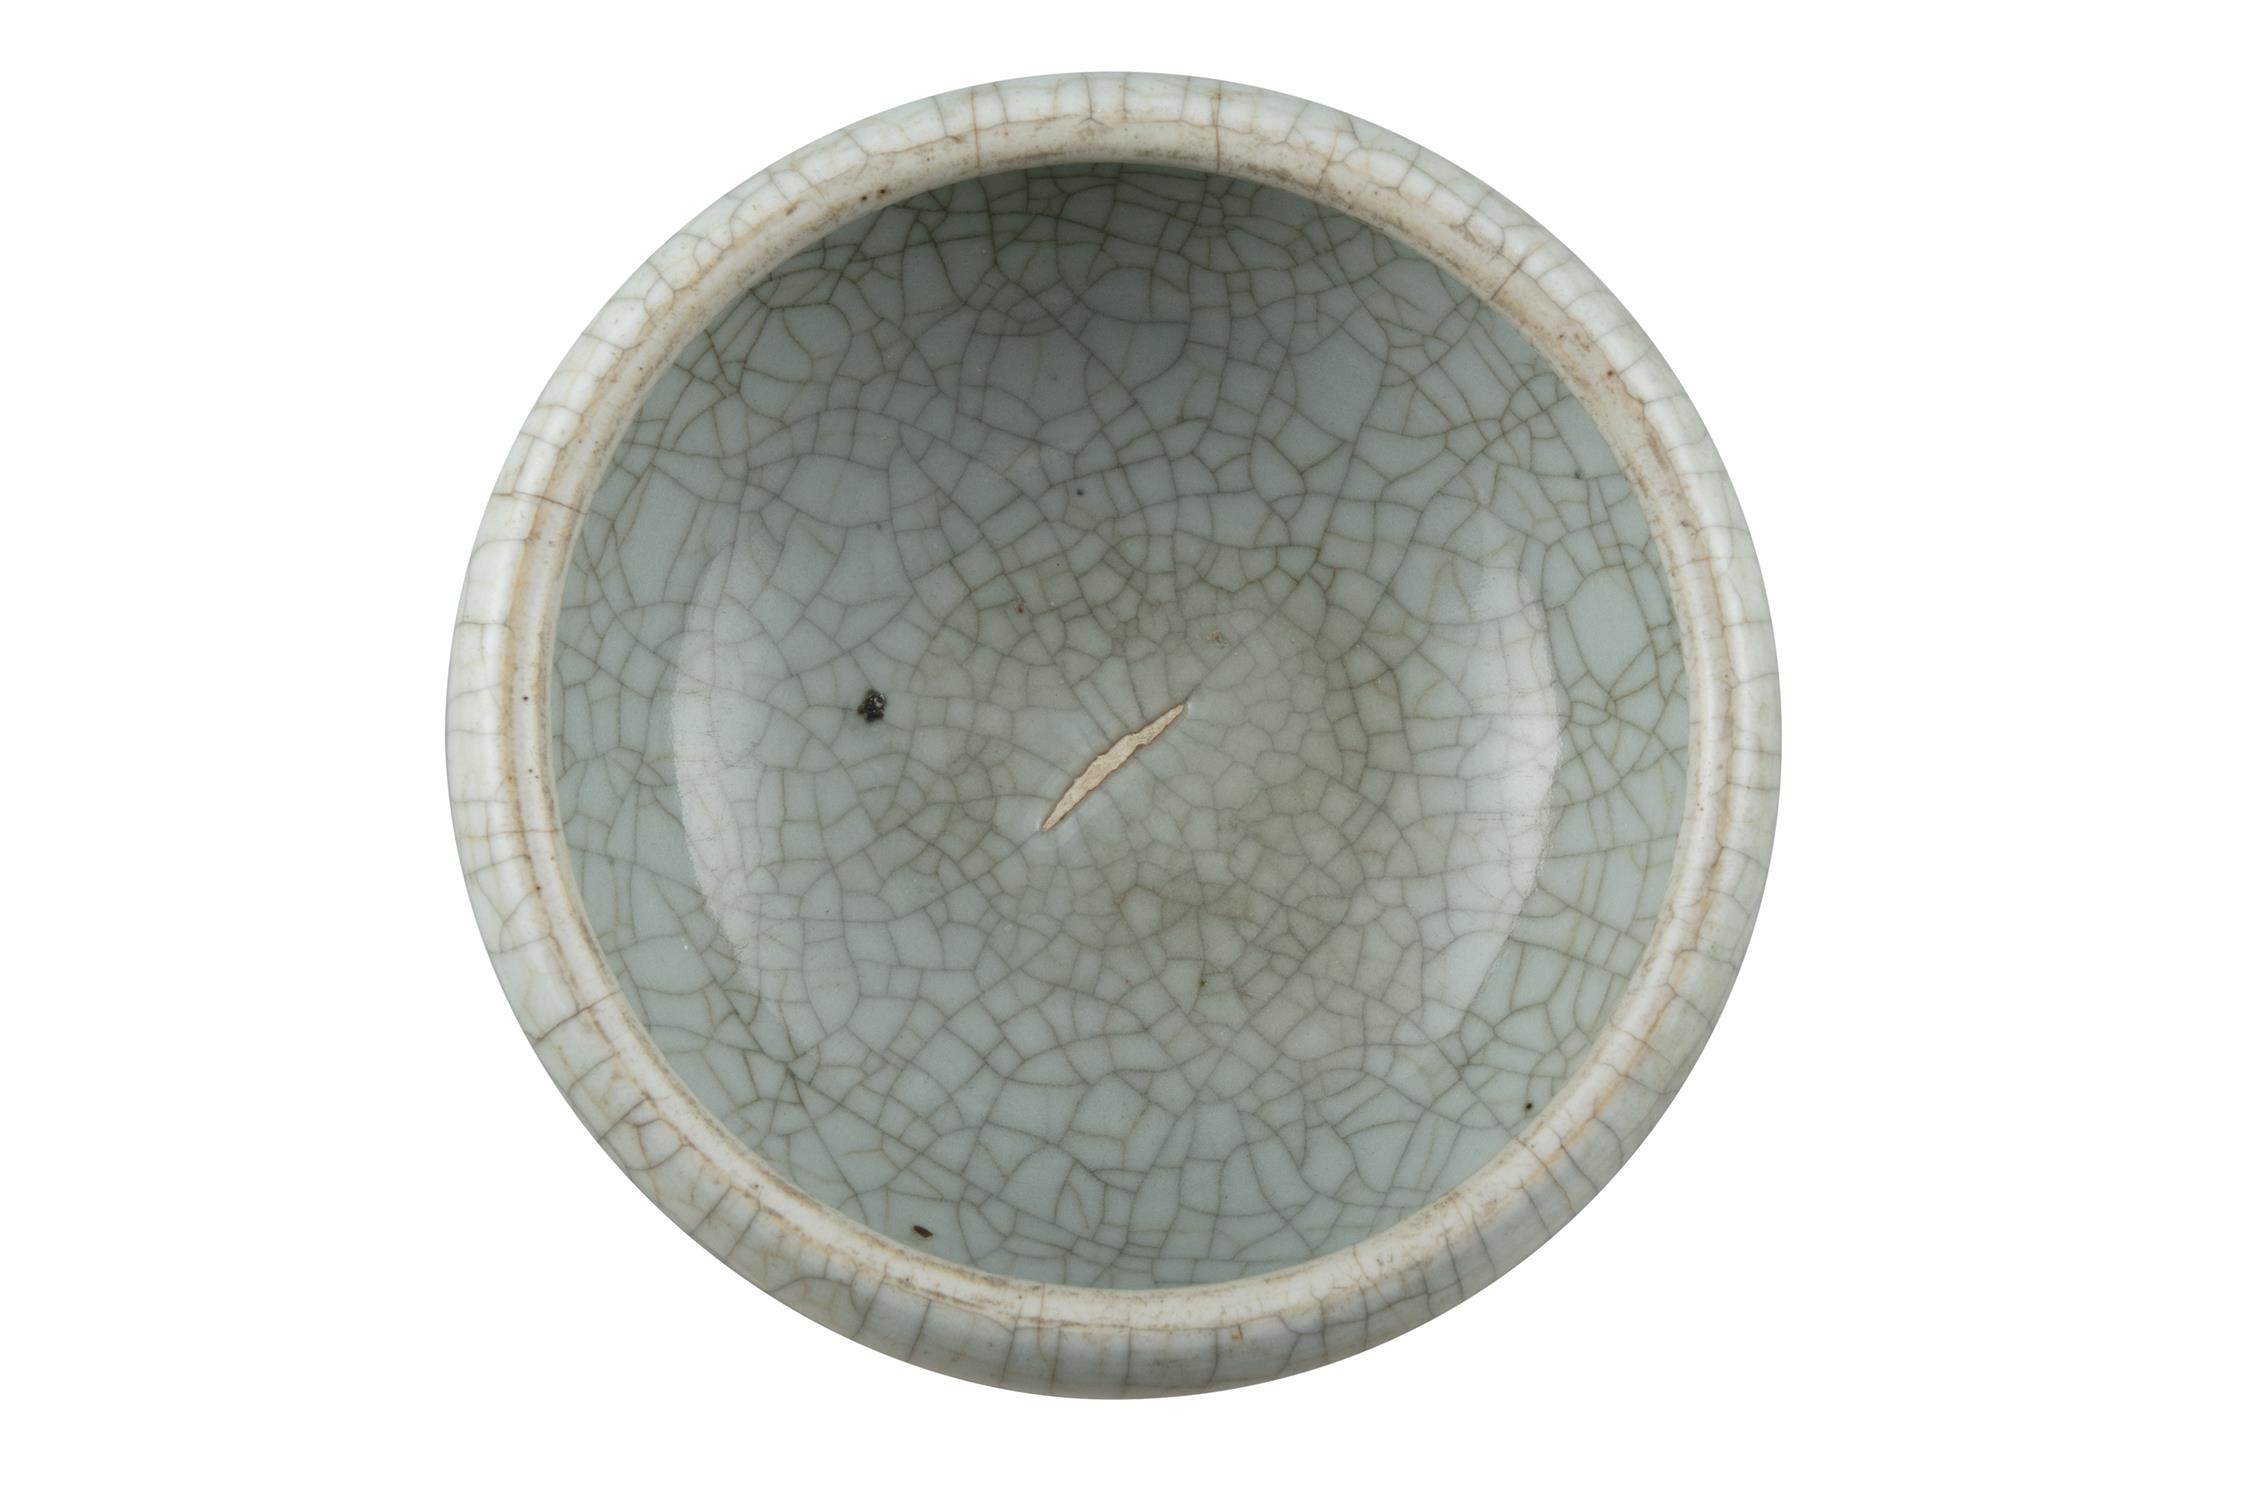 A GEYAO TYPE CRACKLED-CELADON GLAZED GLOBULAR INCENSE-BURNER China, Late Qing to Republican period - Image 11 of 11